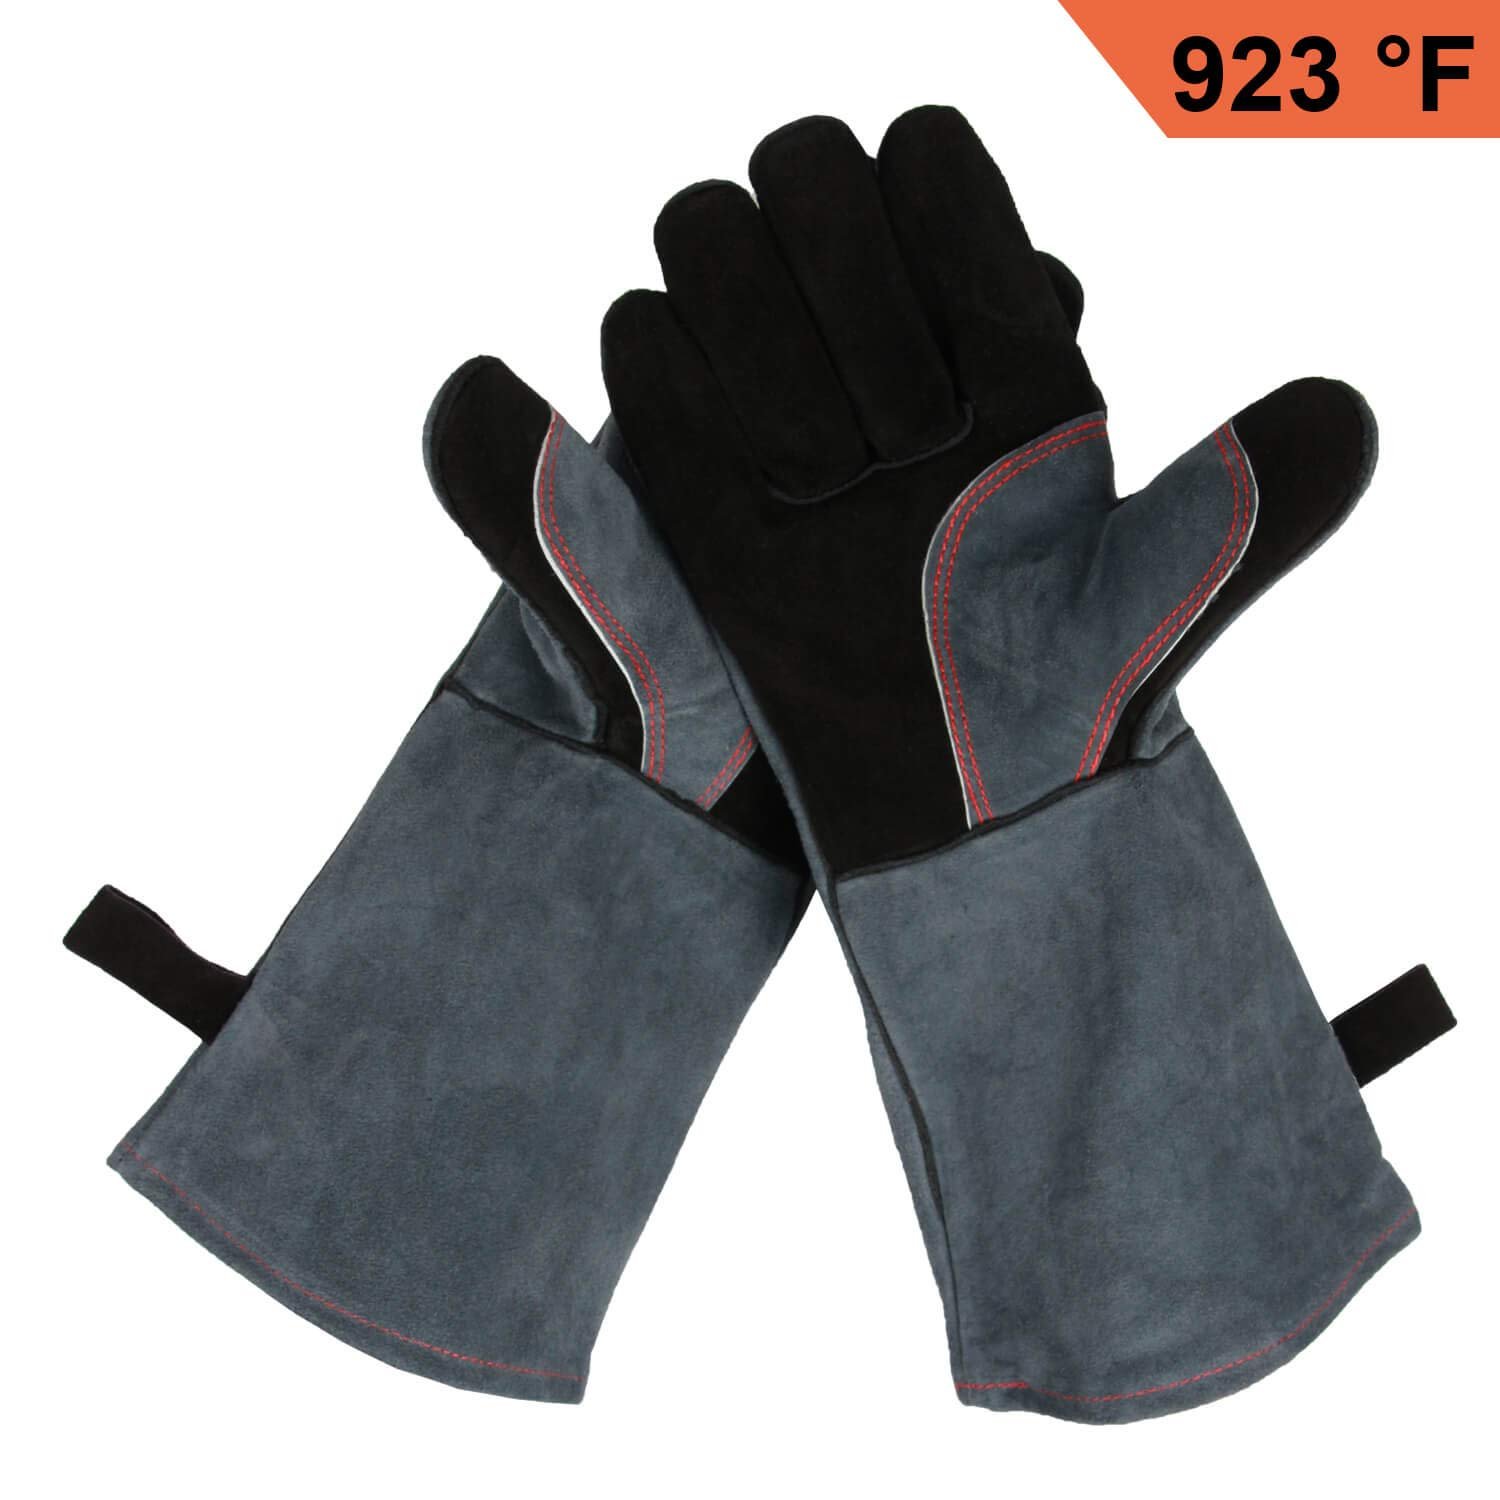 Upgraded Leather Forge Welding Gloves - 932°F Fire/Heat Resistant Glove with Long Sleeve for Grill/Pot Holder/TIG Welder/MIG/Stove/Fireplace/BBQ - Five Fingers and Loose for Men and Women (16 inches)